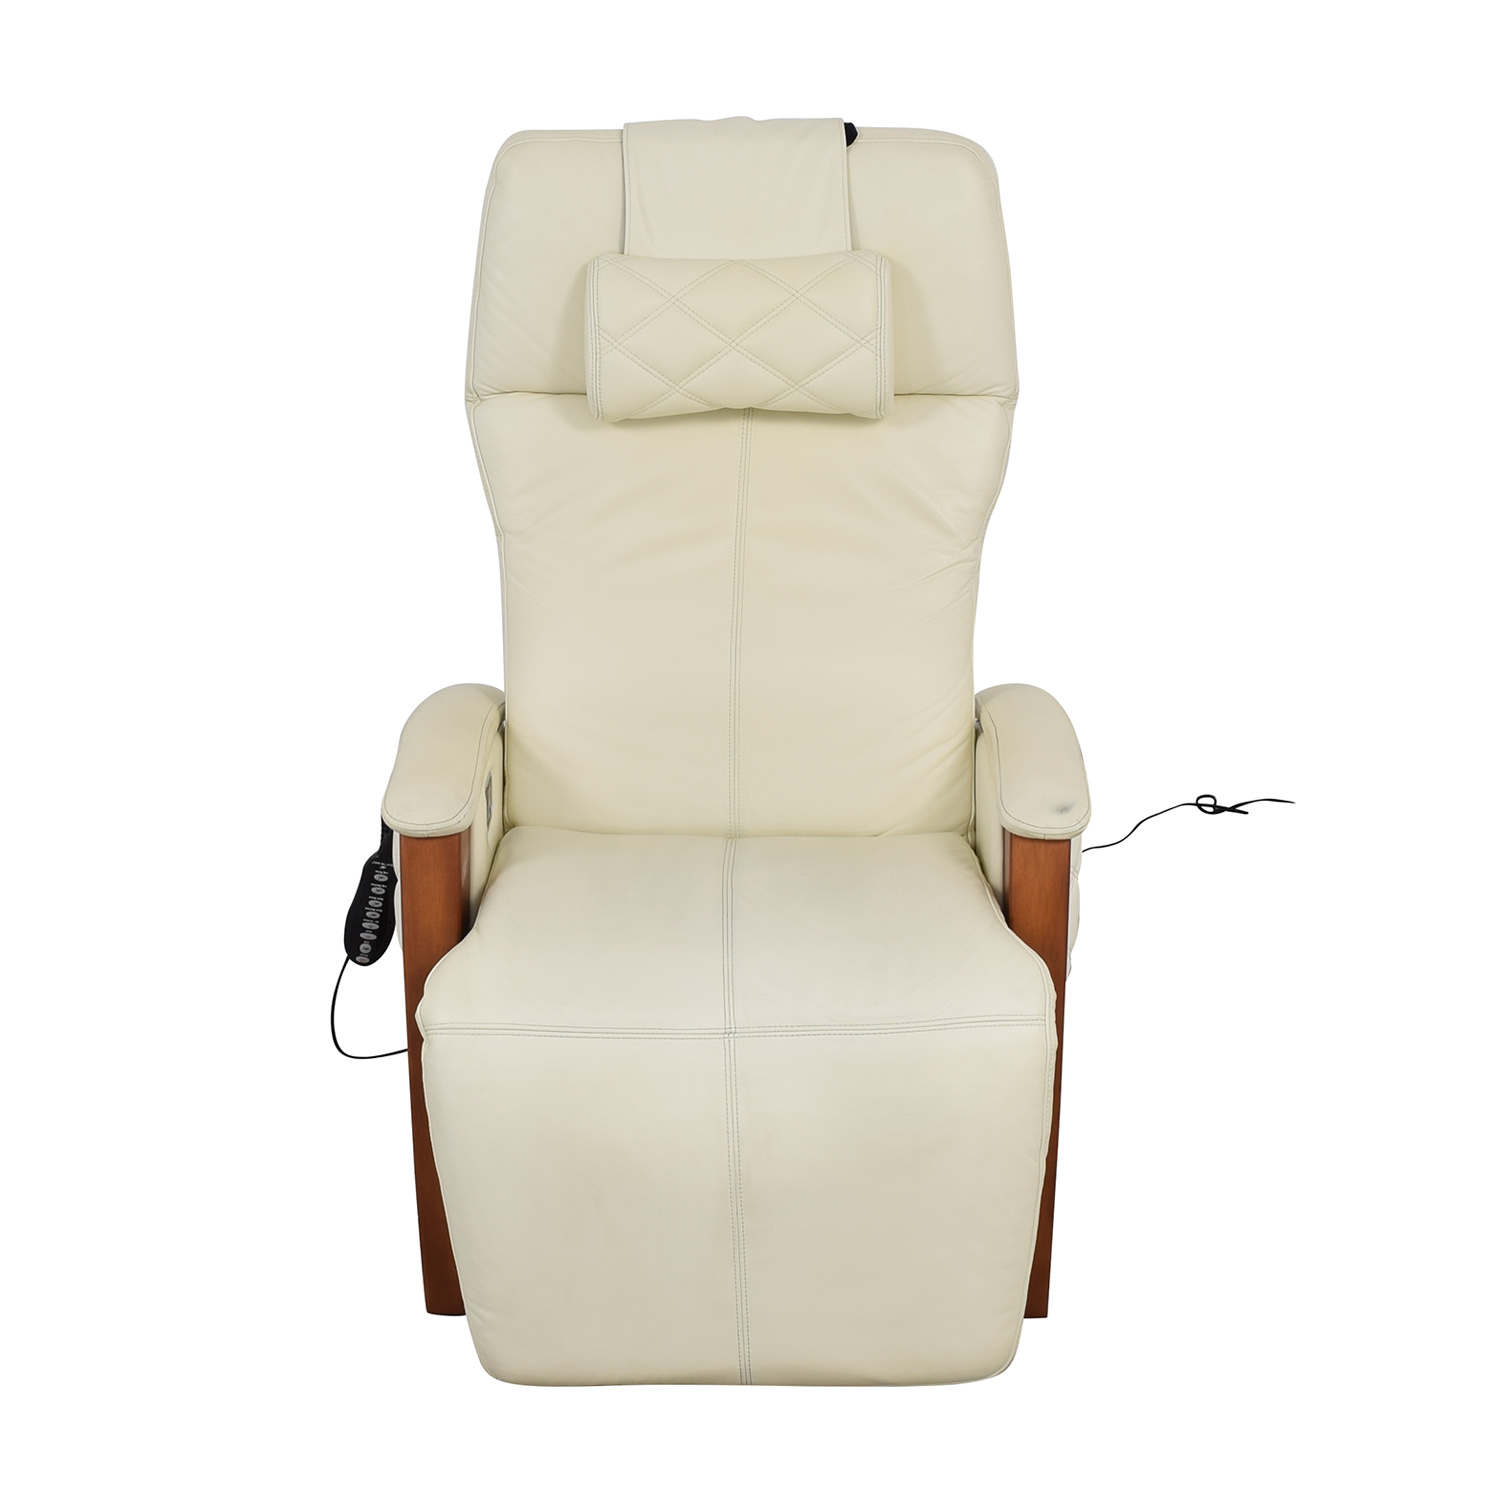 Relax The Back Relax The Back Electro Lounge Chair pa